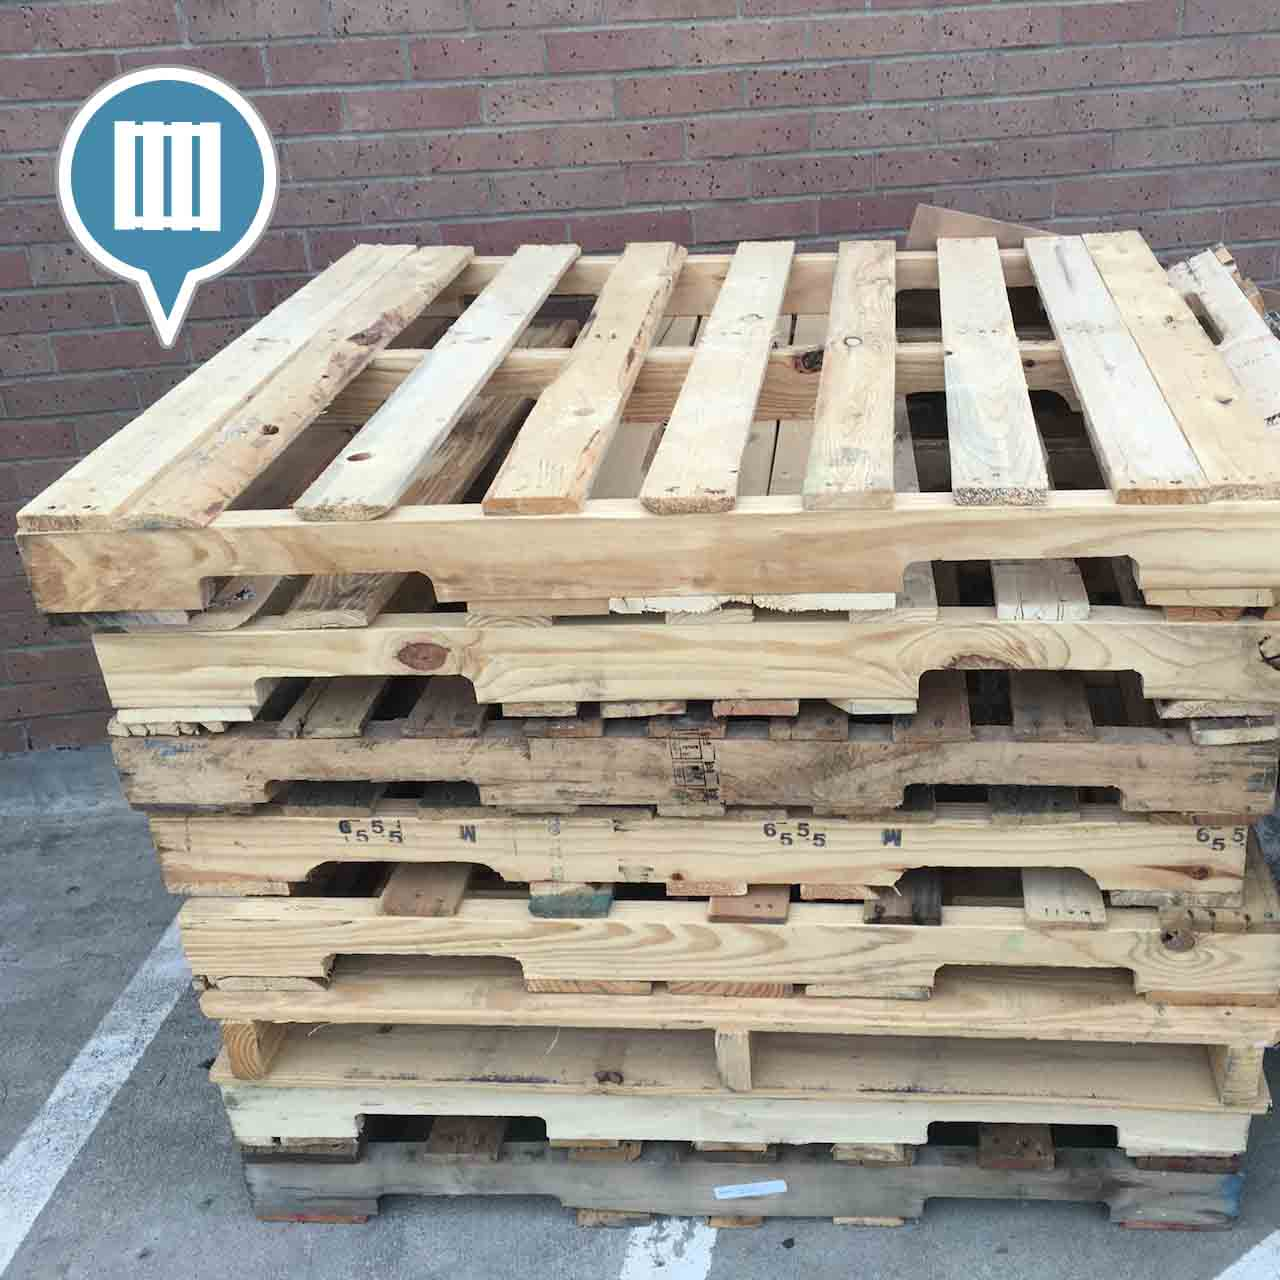 Imagenes De Where Can I Sell Wooden Pallets In San Antonio Tx